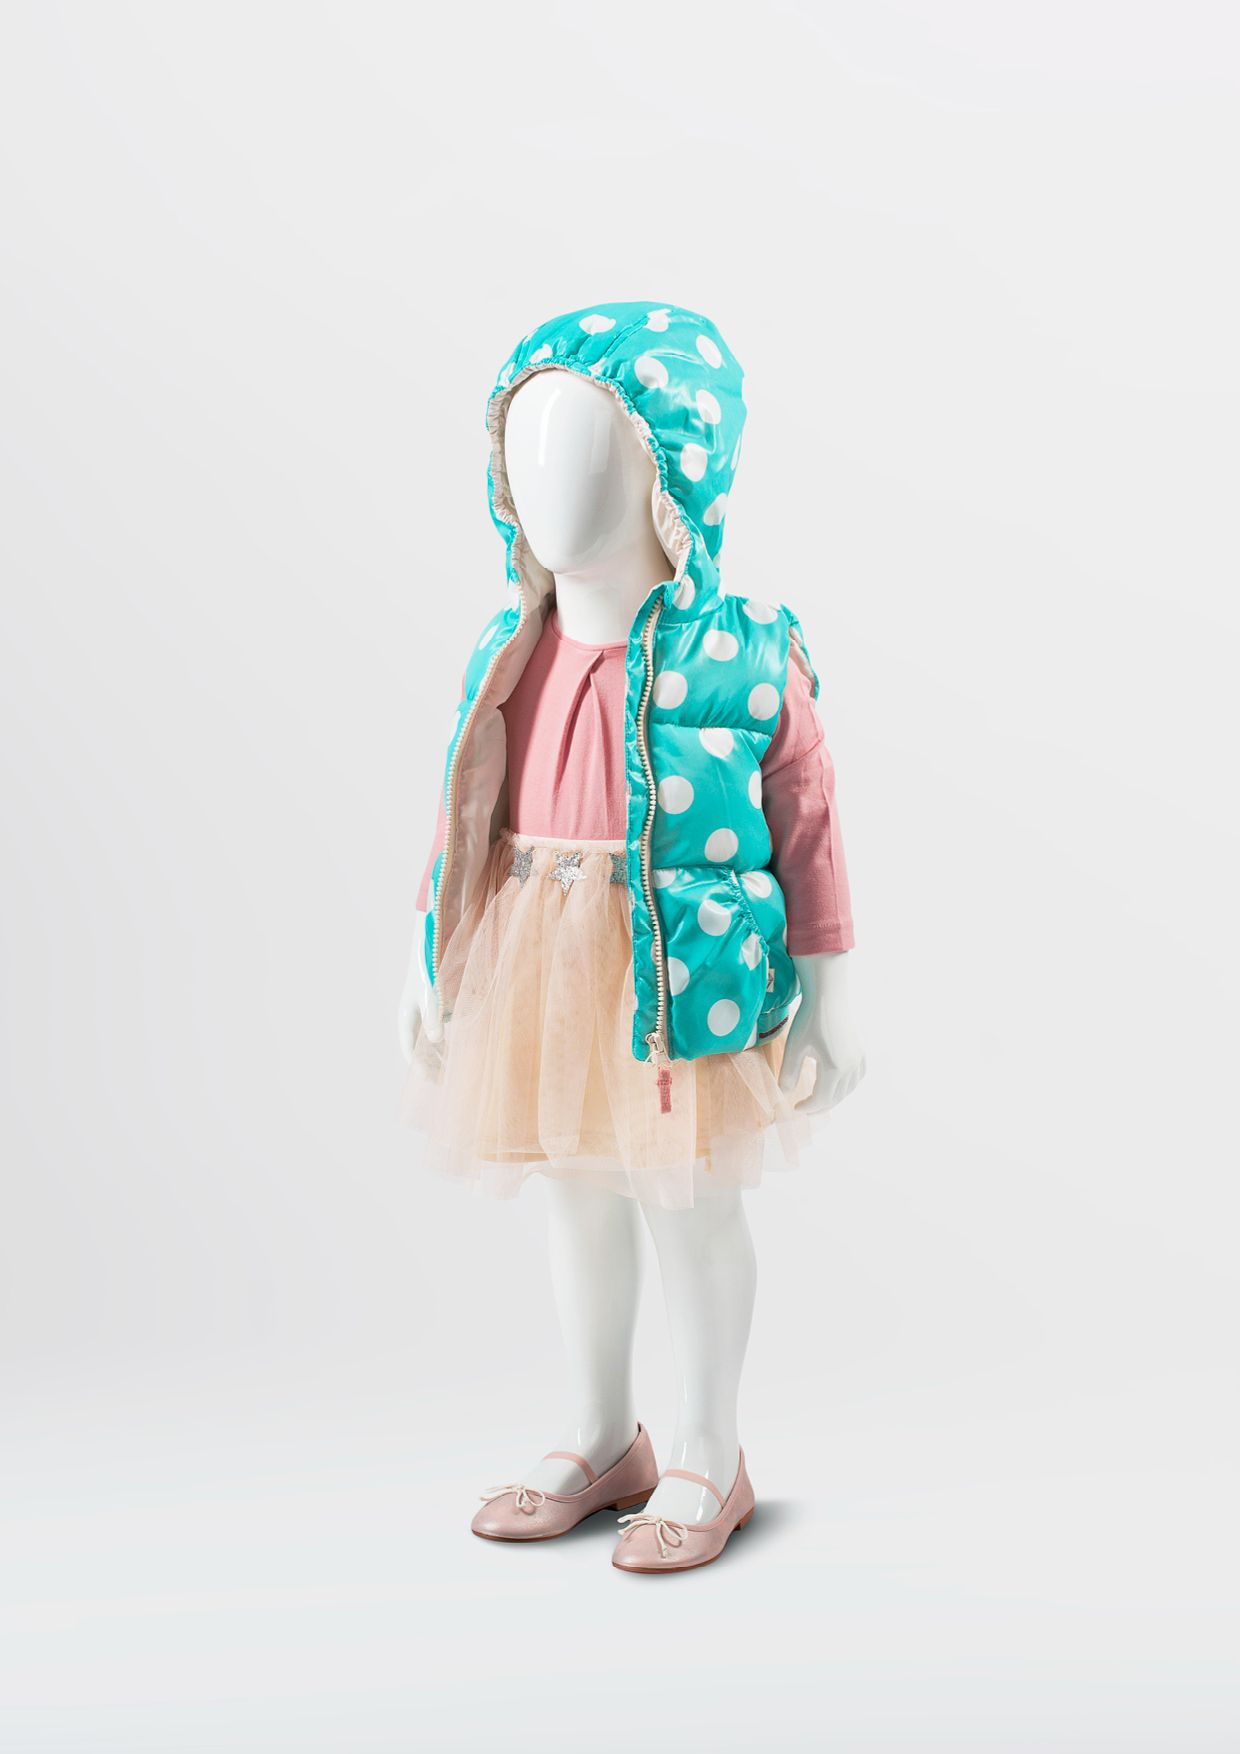 800 SERIES - abstract collection of children mannequins. Distinguishing feature is the shape of the mannequin head. #WindowDisplay #junior